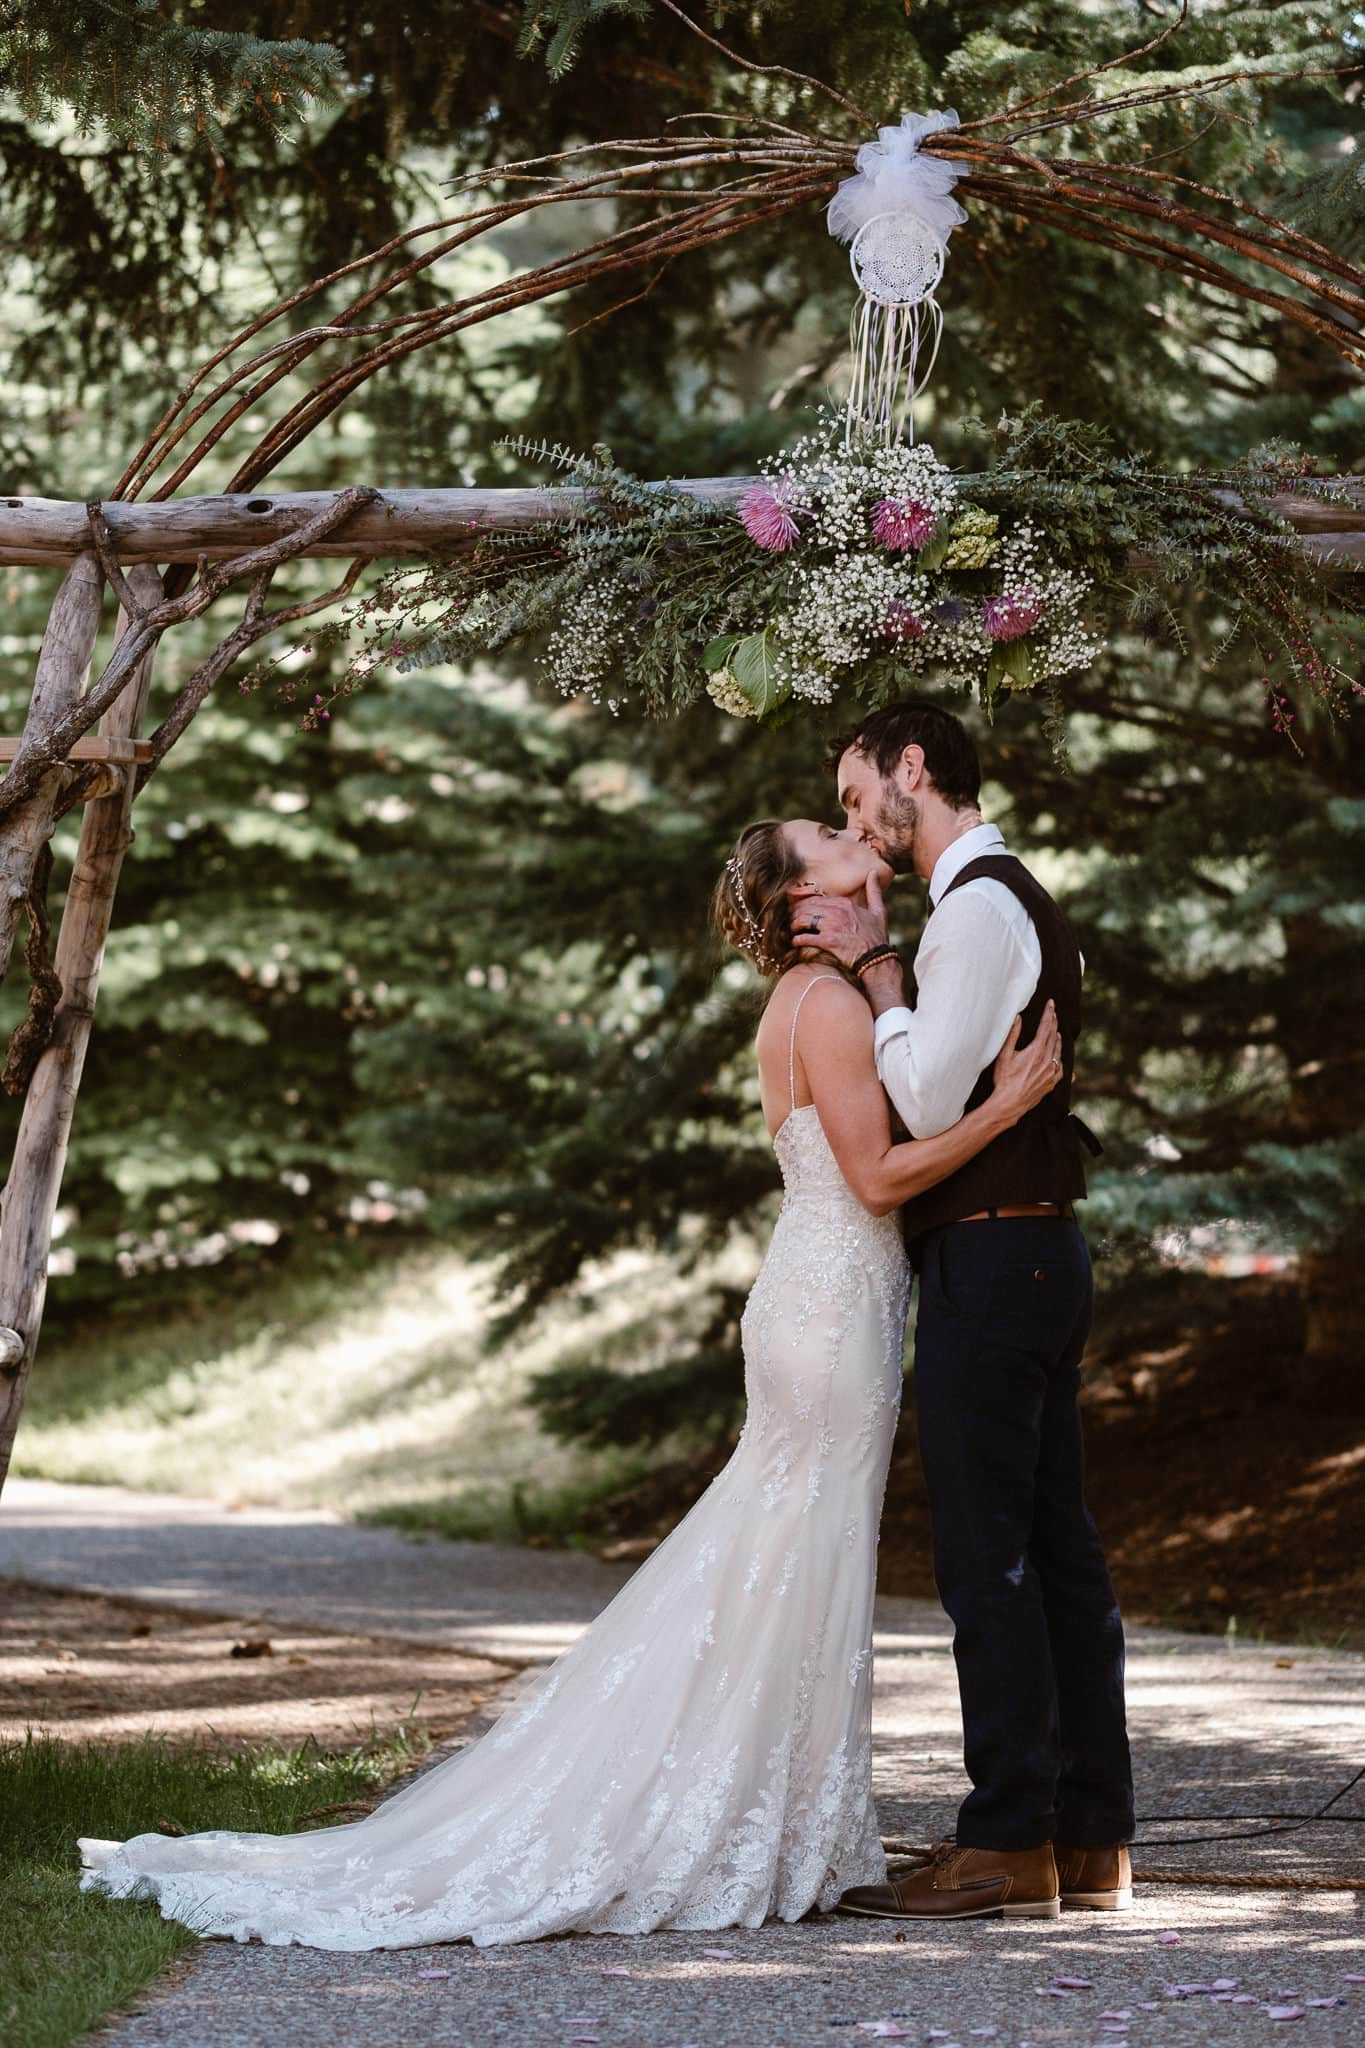 Redstone Inn wedding photographer, Carbondale wedding photographer, Colorado intimate wedding photographer, wedding ceremony first kiss